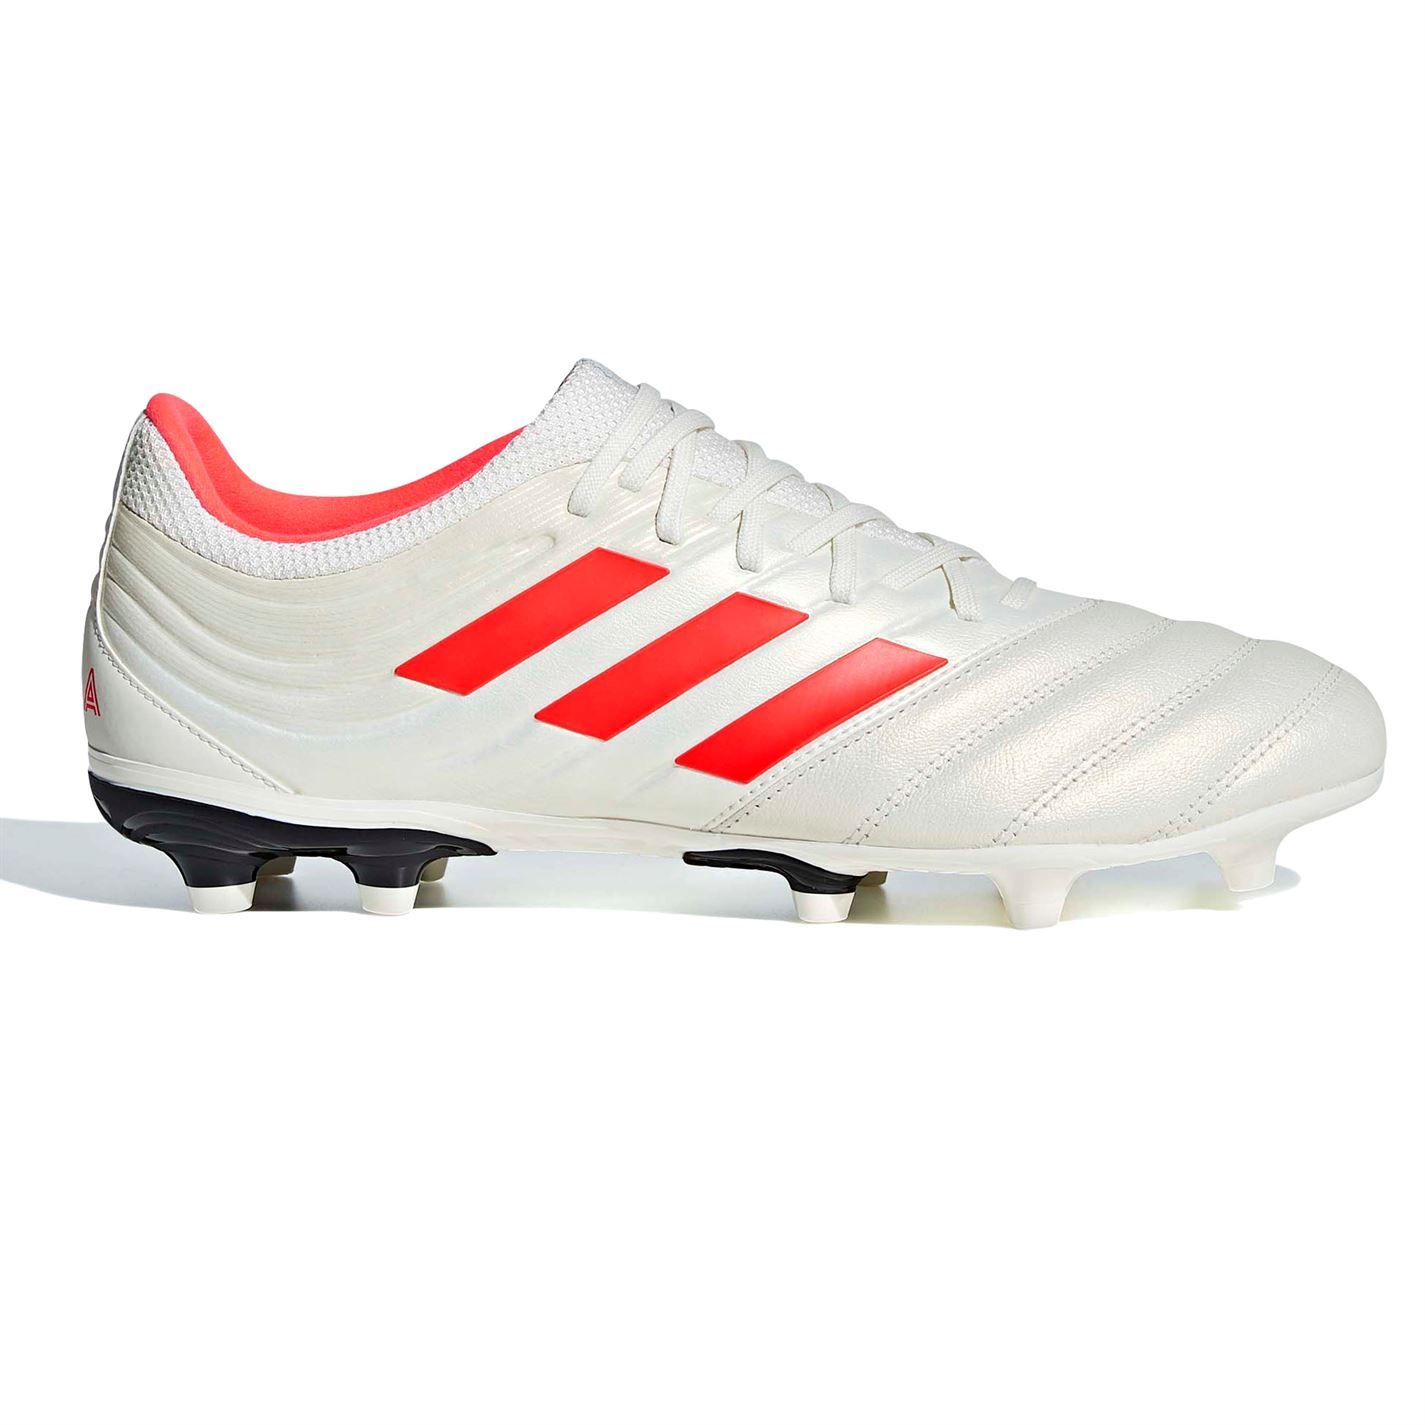 c5c54f17068 ... adidas Copa 19.3 FG Firm Ground Football Boots Mens White Red Soccer  Shoe Cleats ...